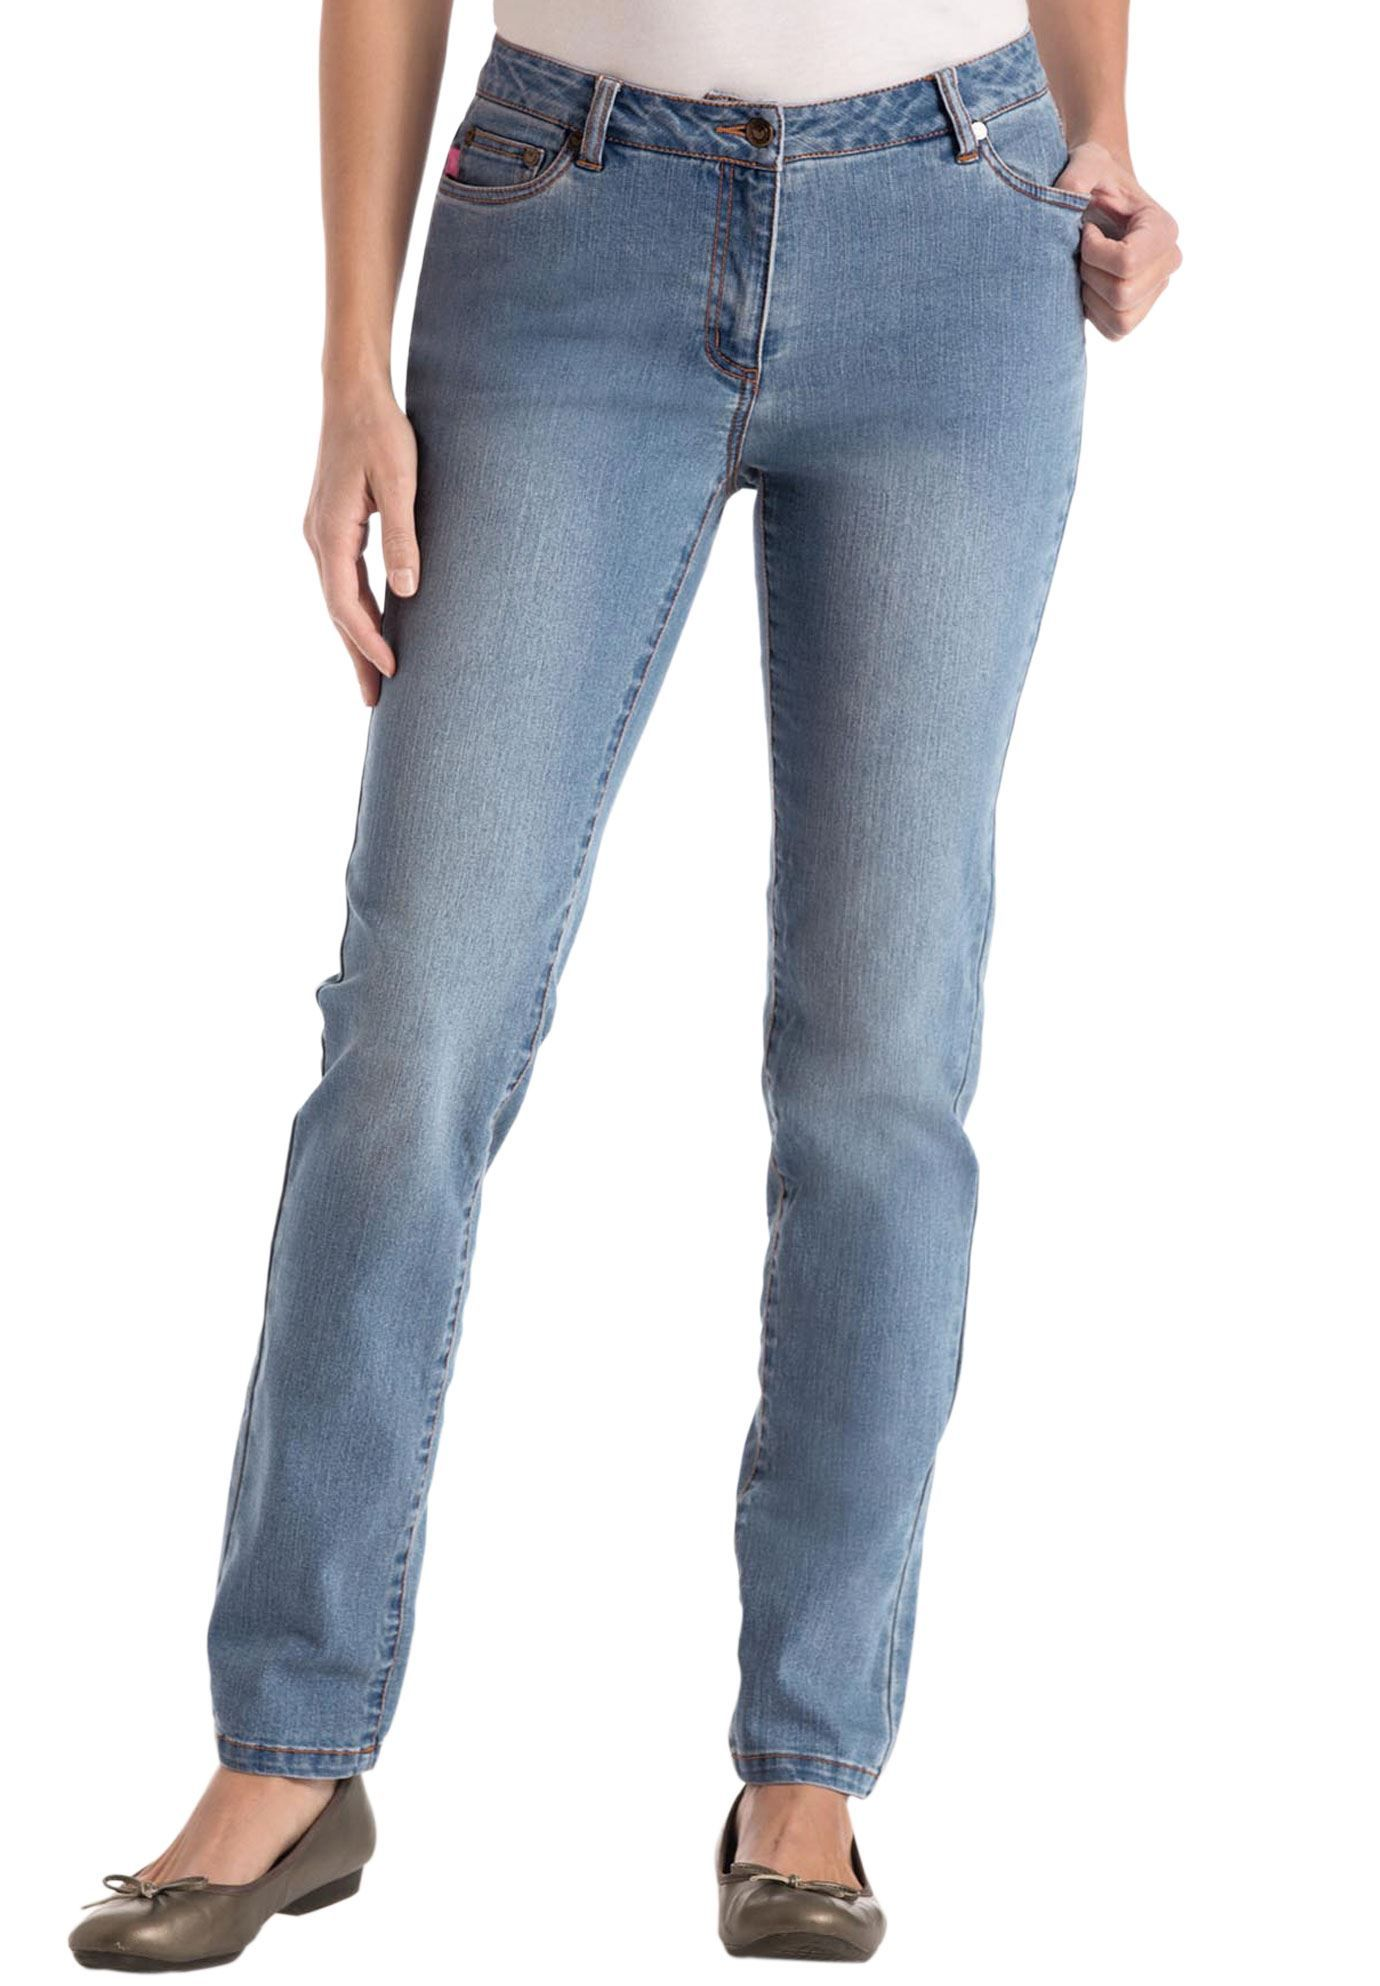 Plus Size Tall jean, skinny, stretch, tapered leg, 5-pocket ...